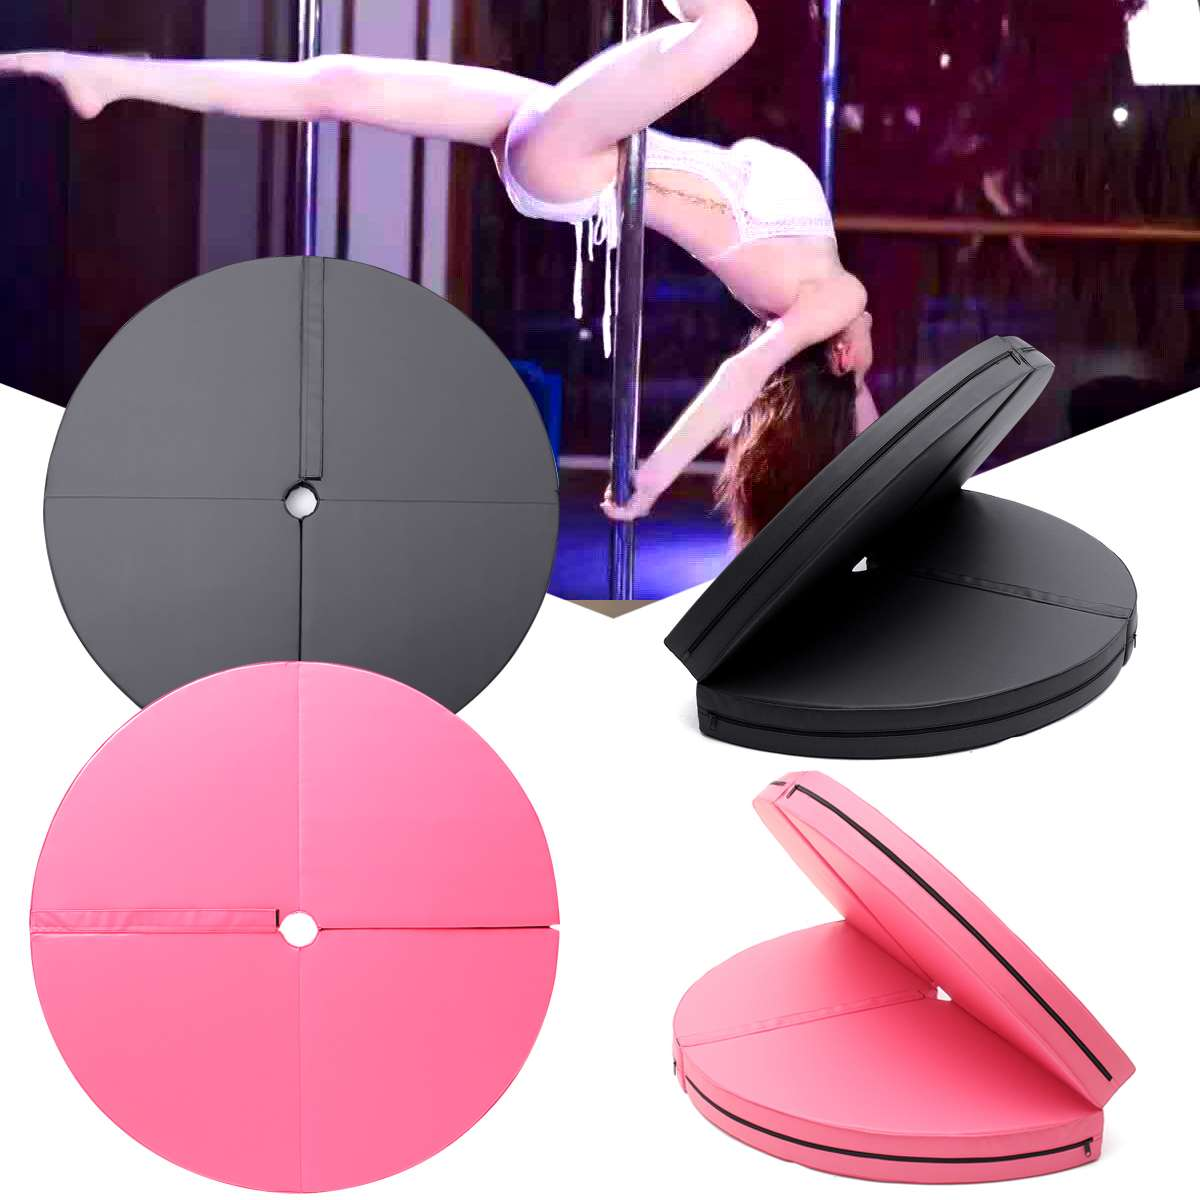 Foldable Pole Dance Carpet Mat Round Cotton Yoga Mats For Fitness Tasteless Gym Exercise Sport Safety Mats Protector Pads Women